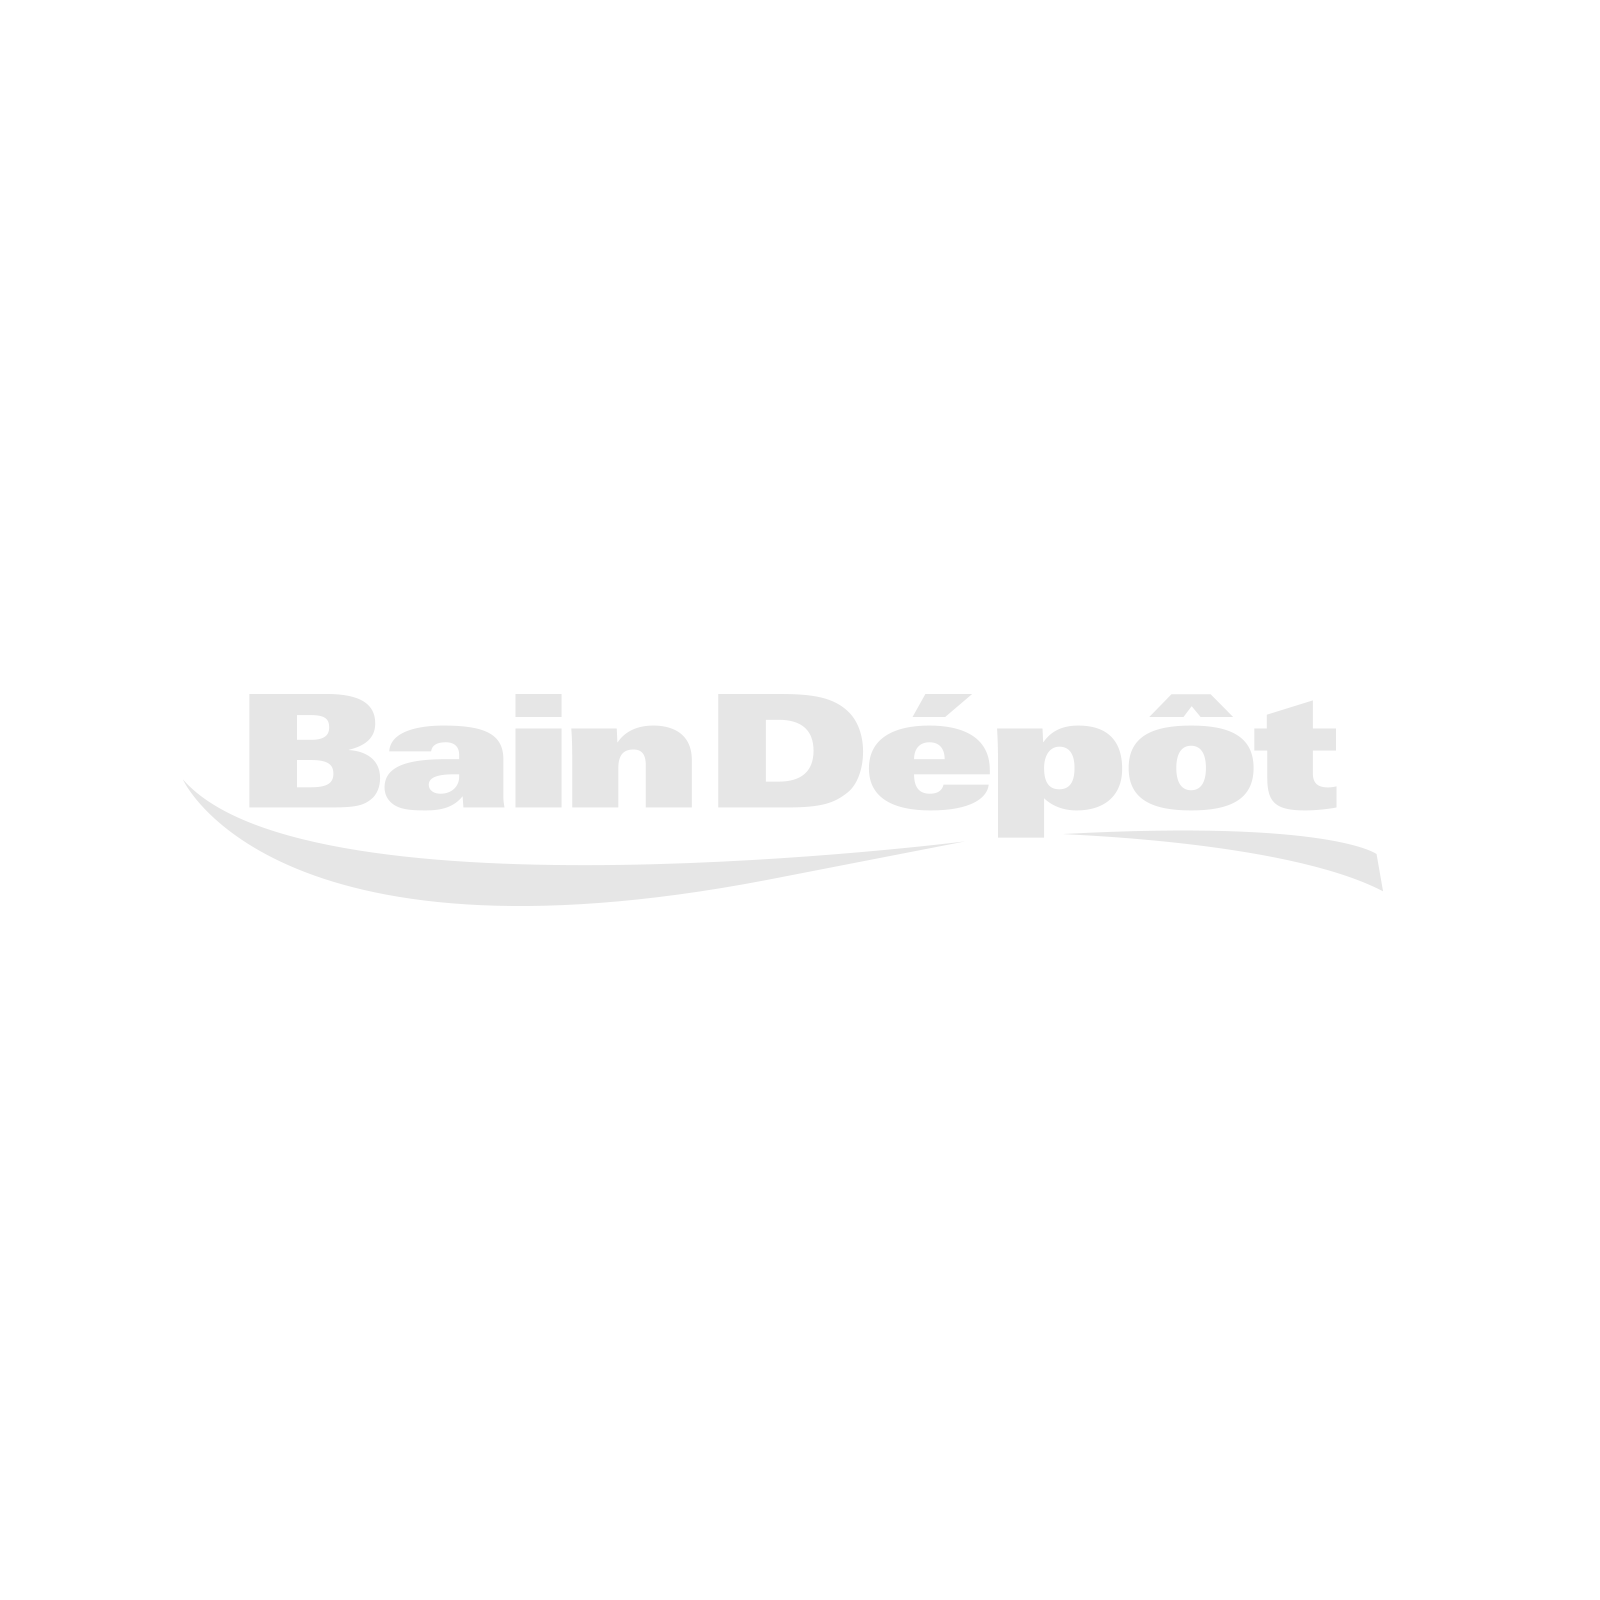 "31"" x 31"" Belly shower kit with base, walls and textured glass sliding door"